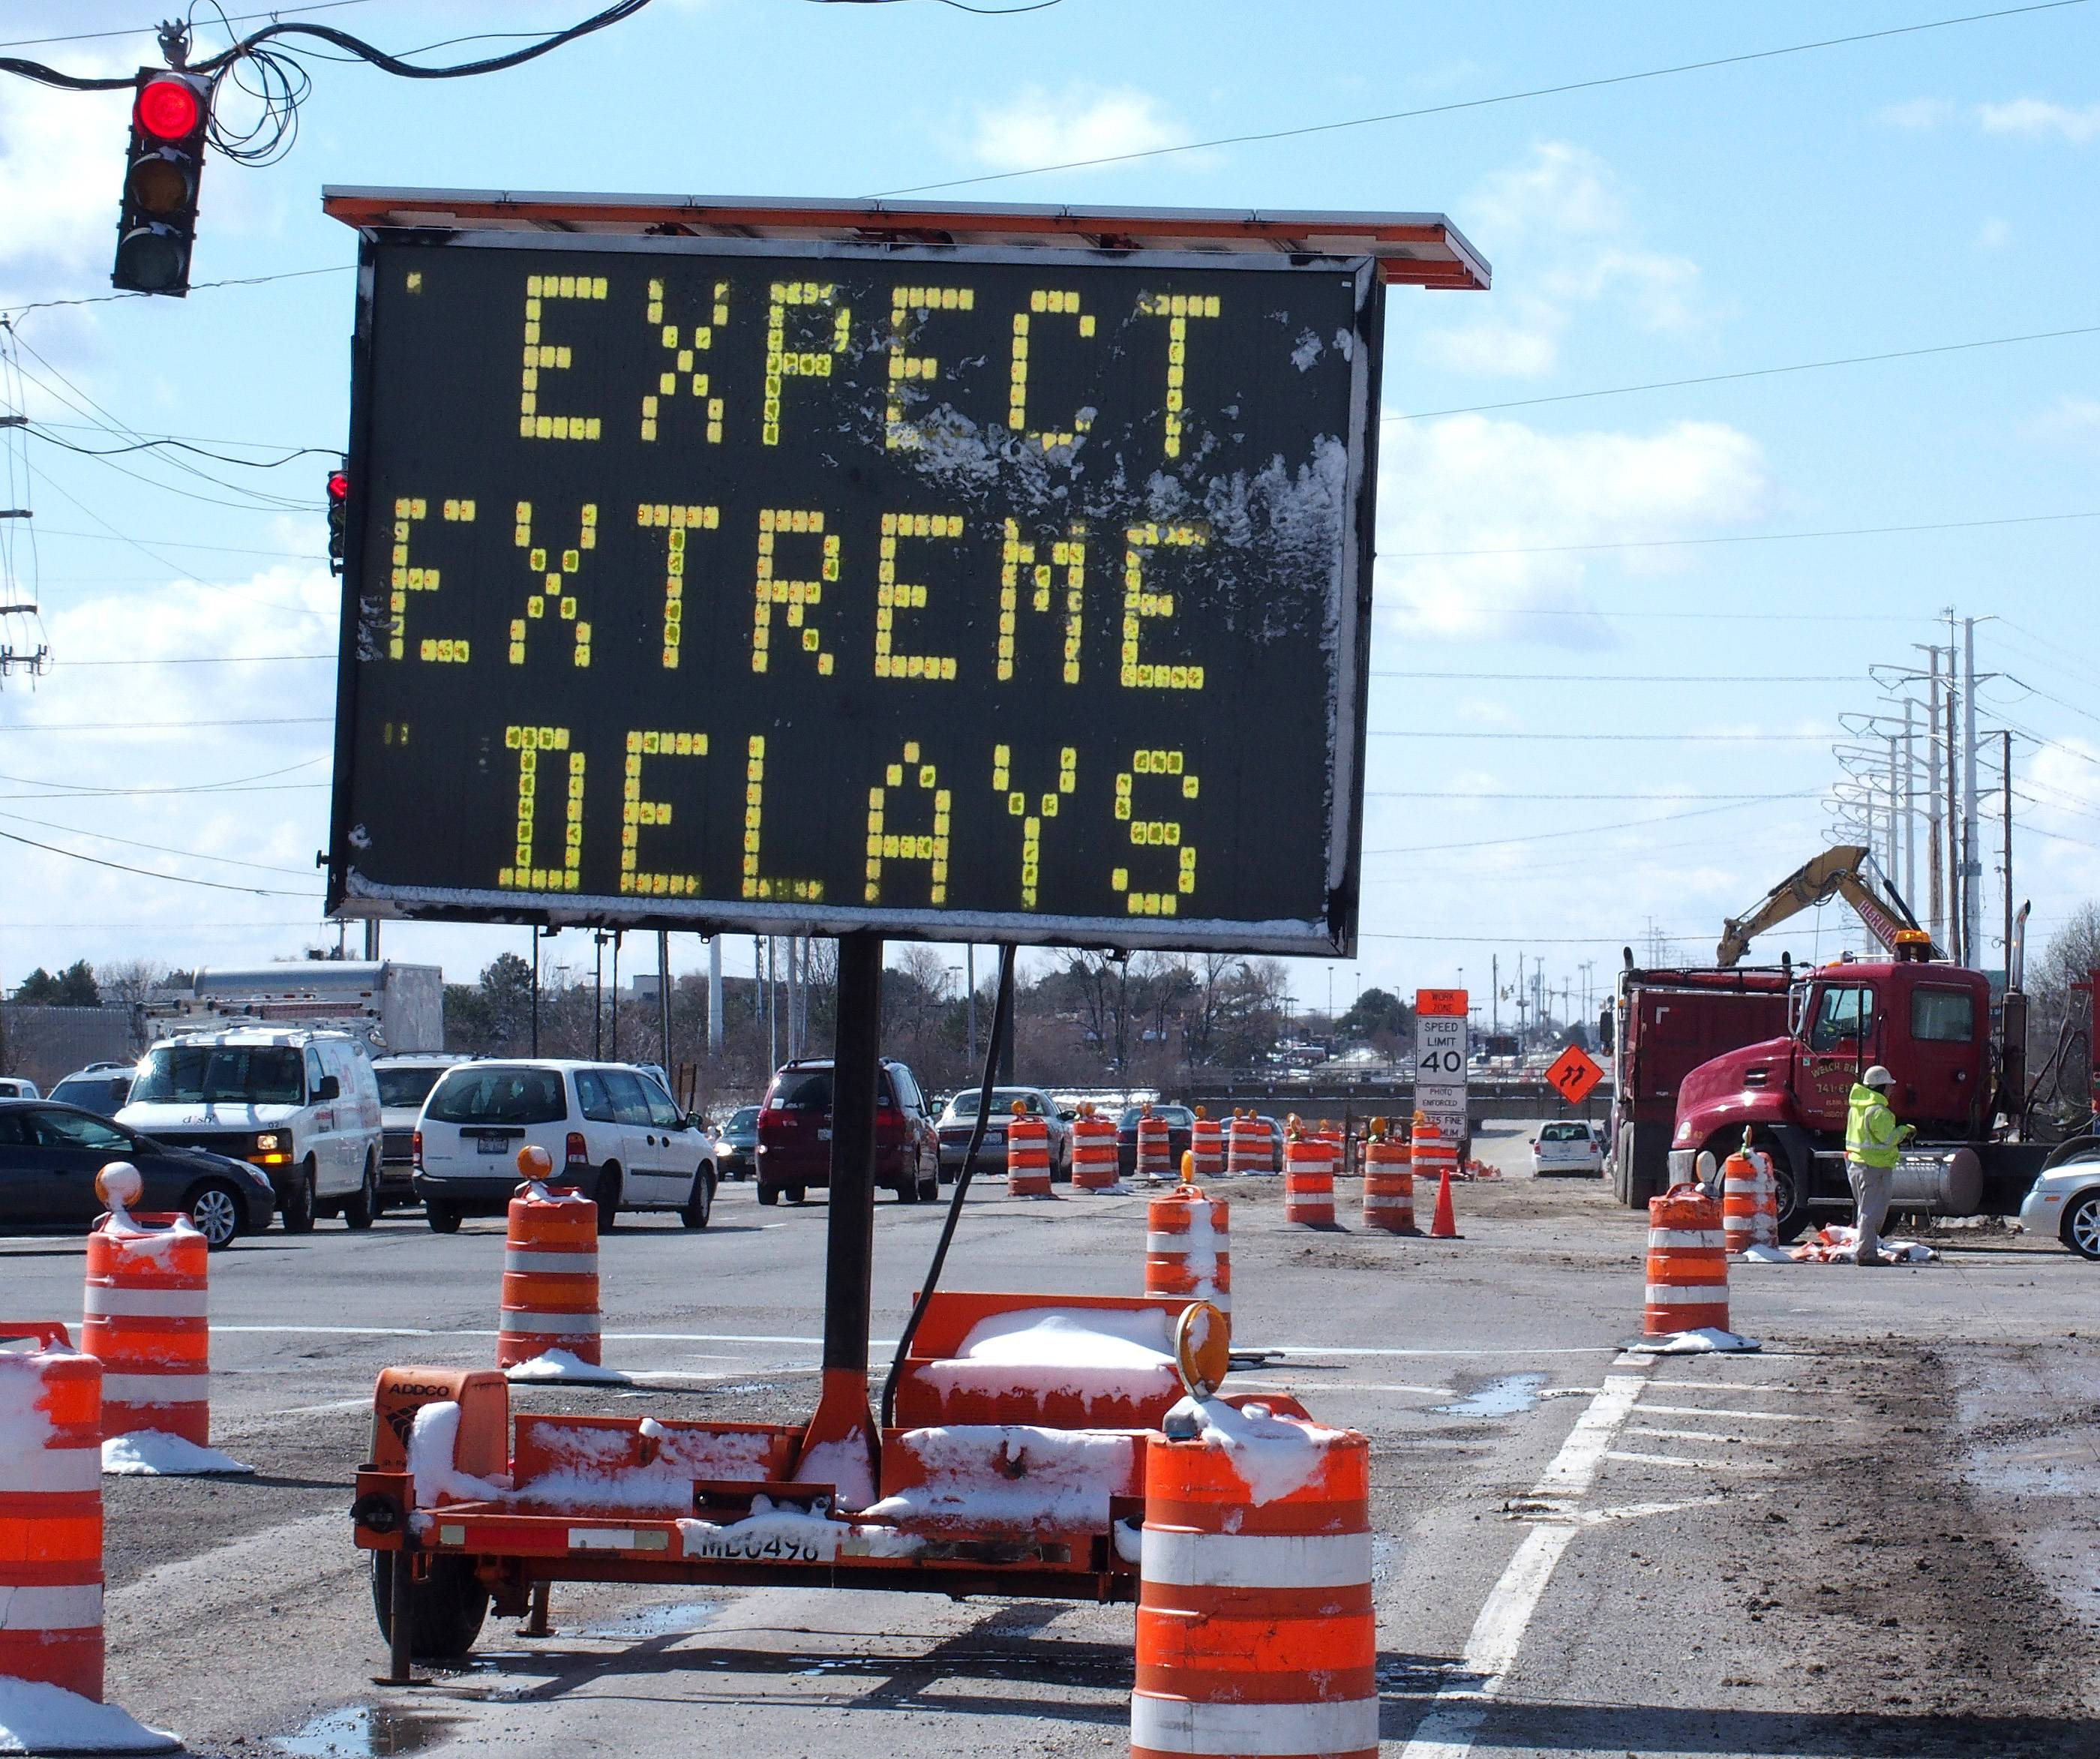 Road signs warn drivers of delays expected to begin Monday on Route 59 in Naperville and Aurora as the road is reduced to one lane in each direction under the BNSF railroad tracks between North Aurora Road and Glacier Park Avenue/Meridian Parkway.